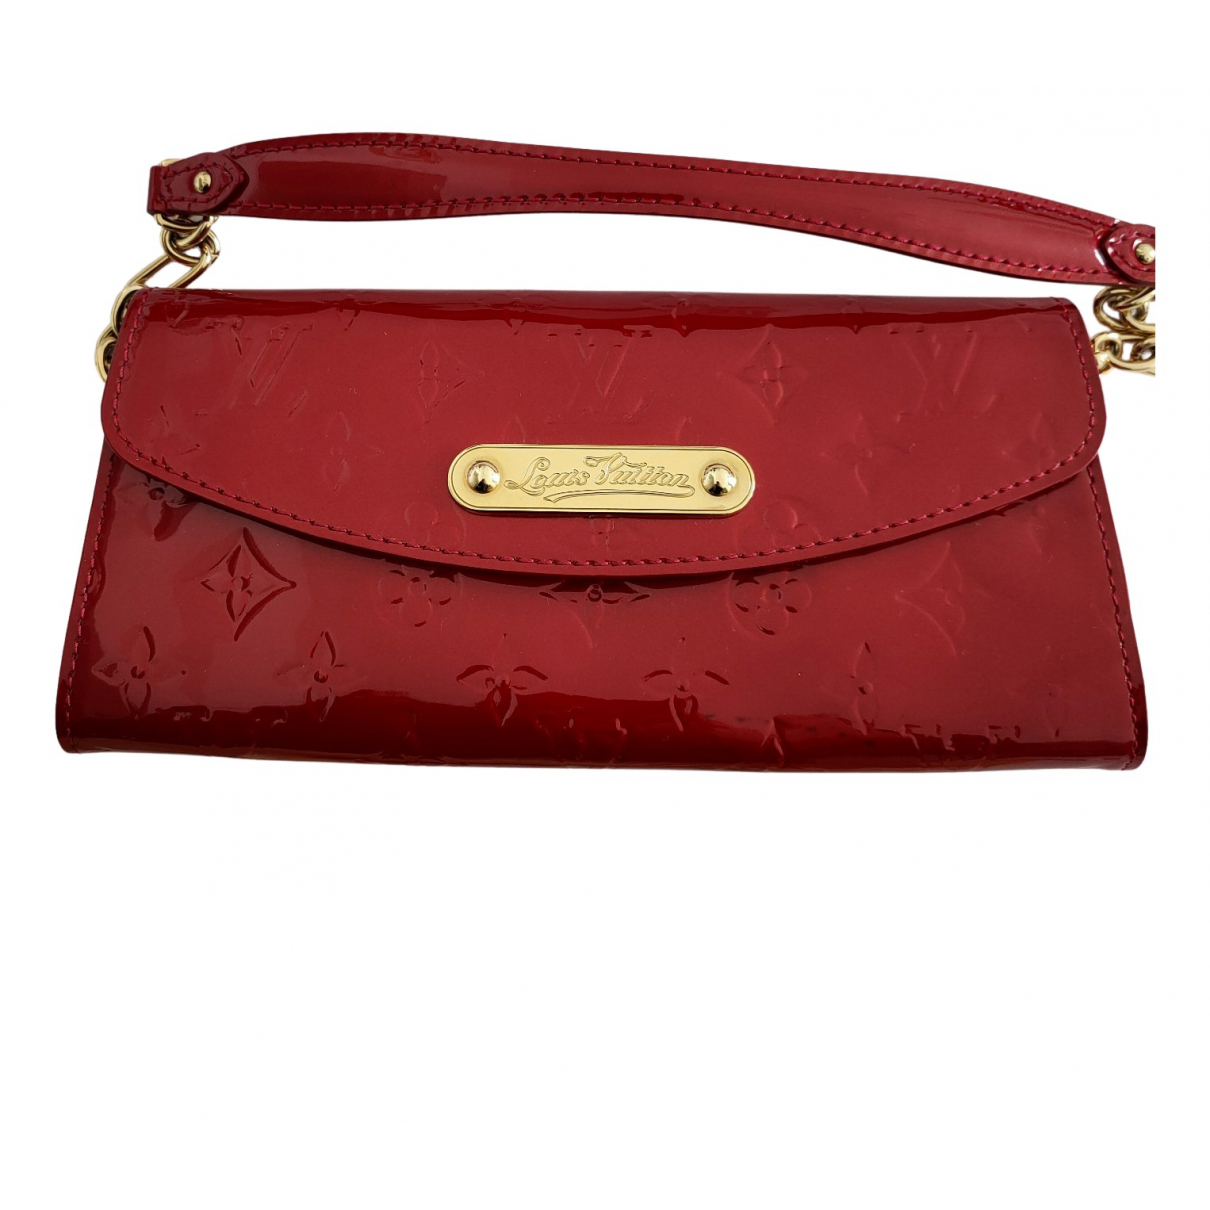 Louis Vuitton N Red Patent leather Clutch bag for Women N